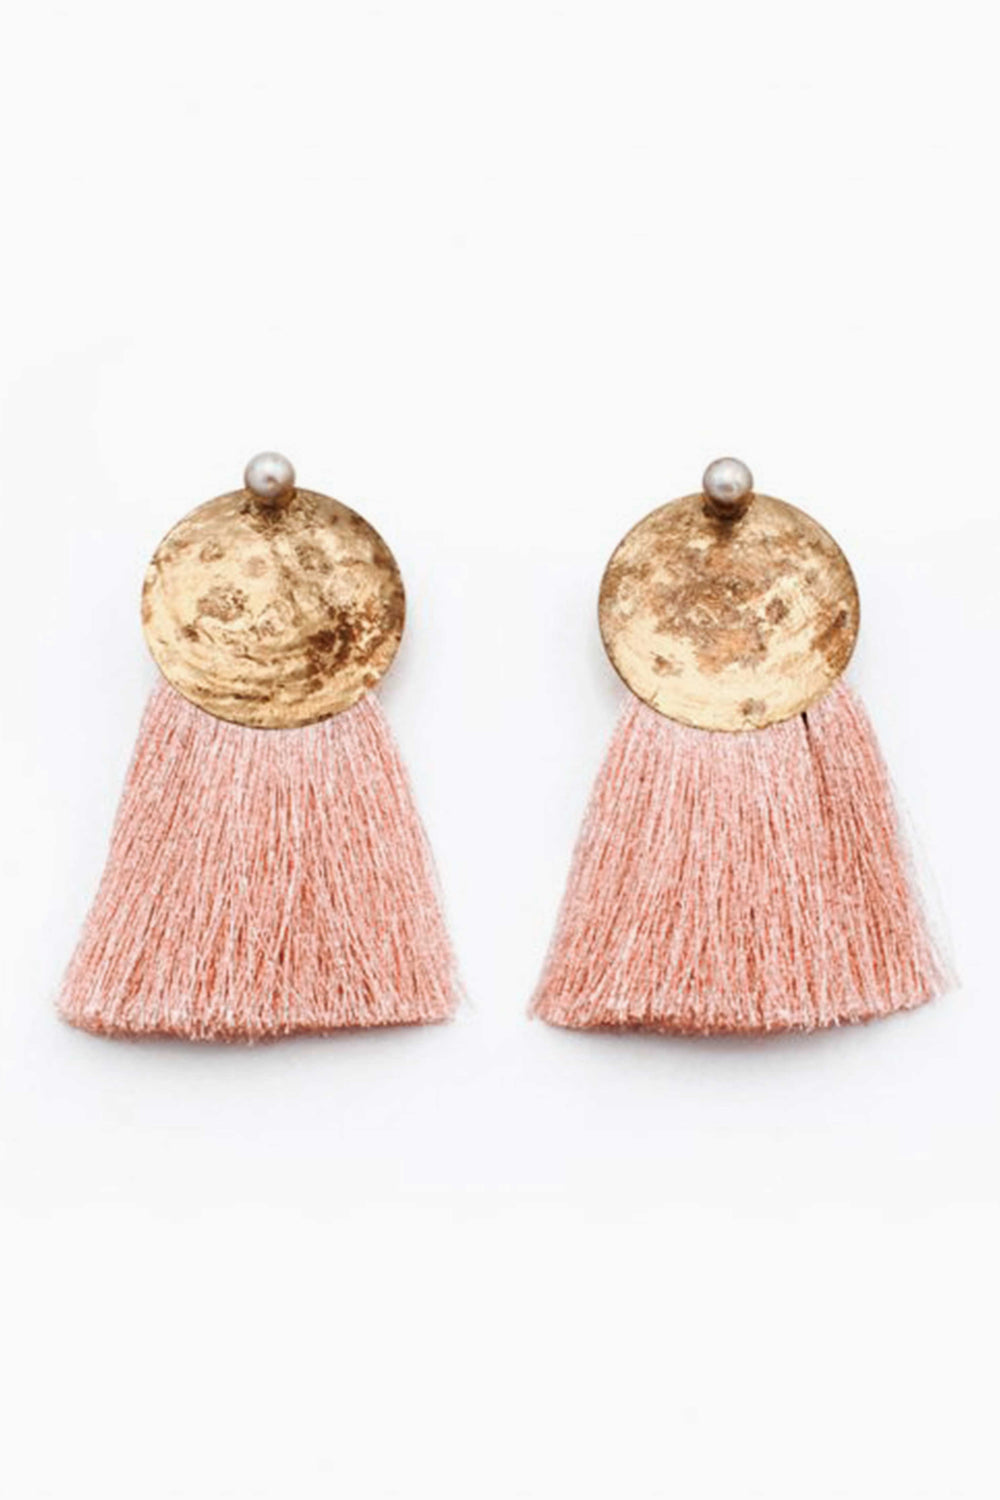 NEVER ENDING SUMMER EARRINGS - Chic Le Frique